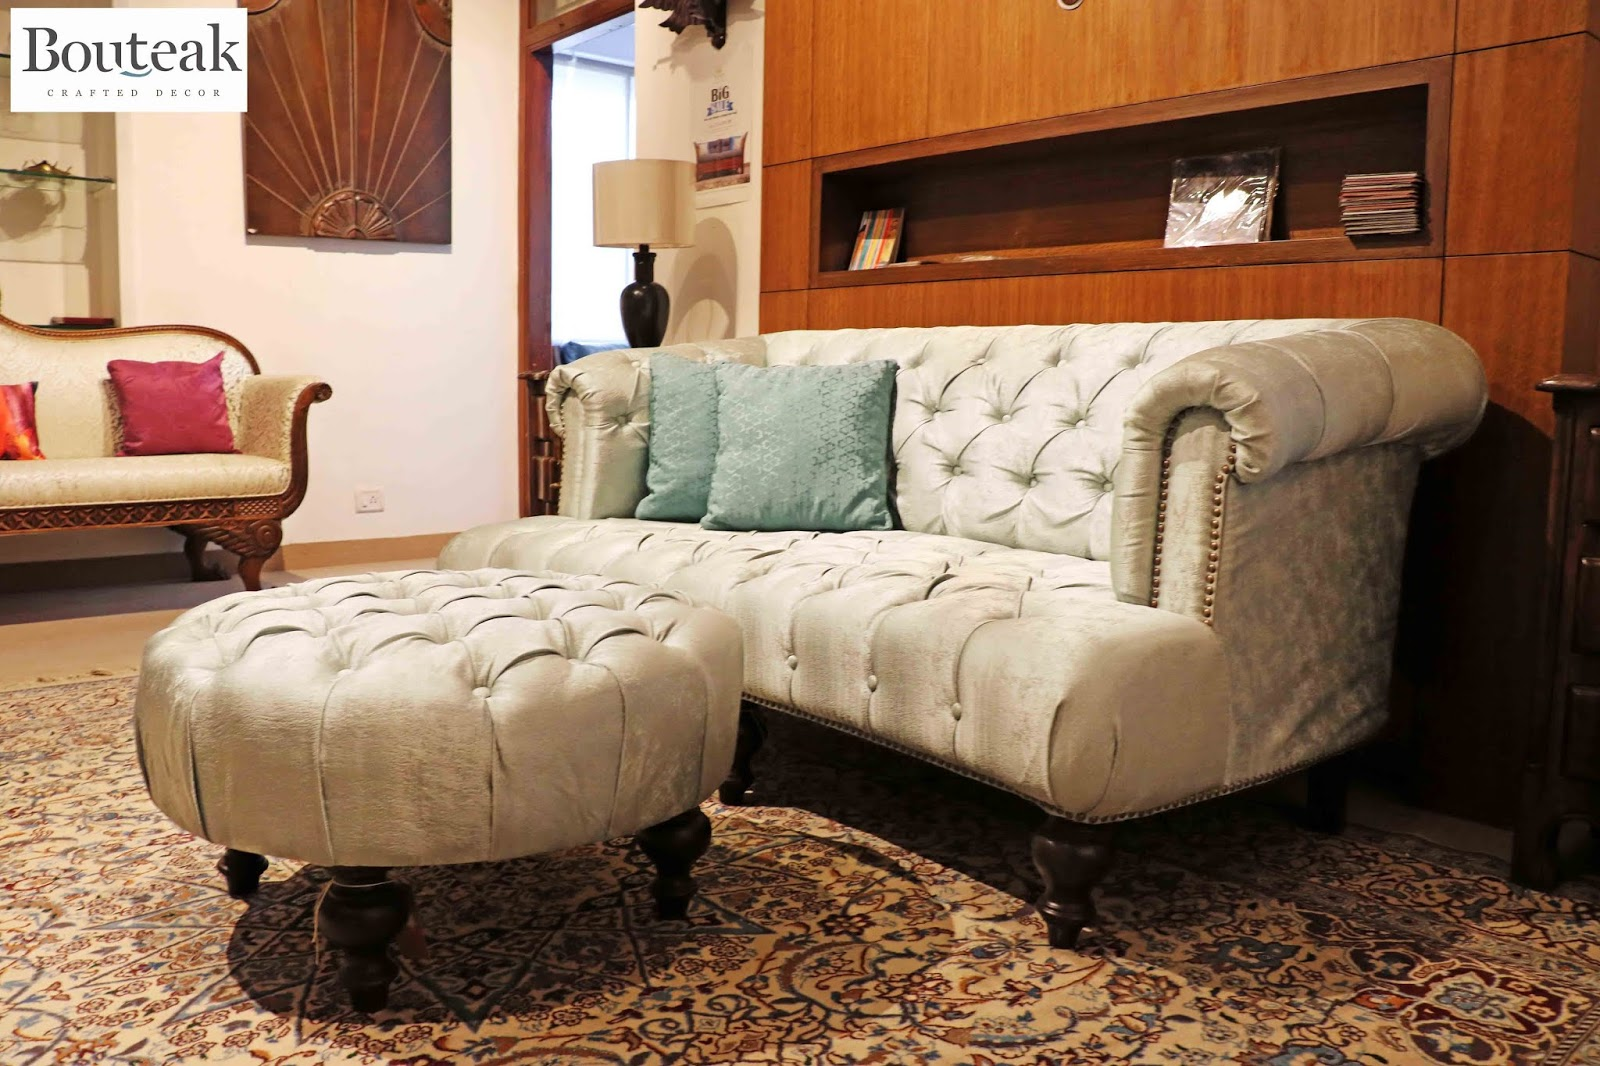 Feet Or Even The Stunning Chesterfield Sofa Set With A Wood Carved Central Motif Heritage At Its Best Made Regal And Cly For Today S Connoisseurs